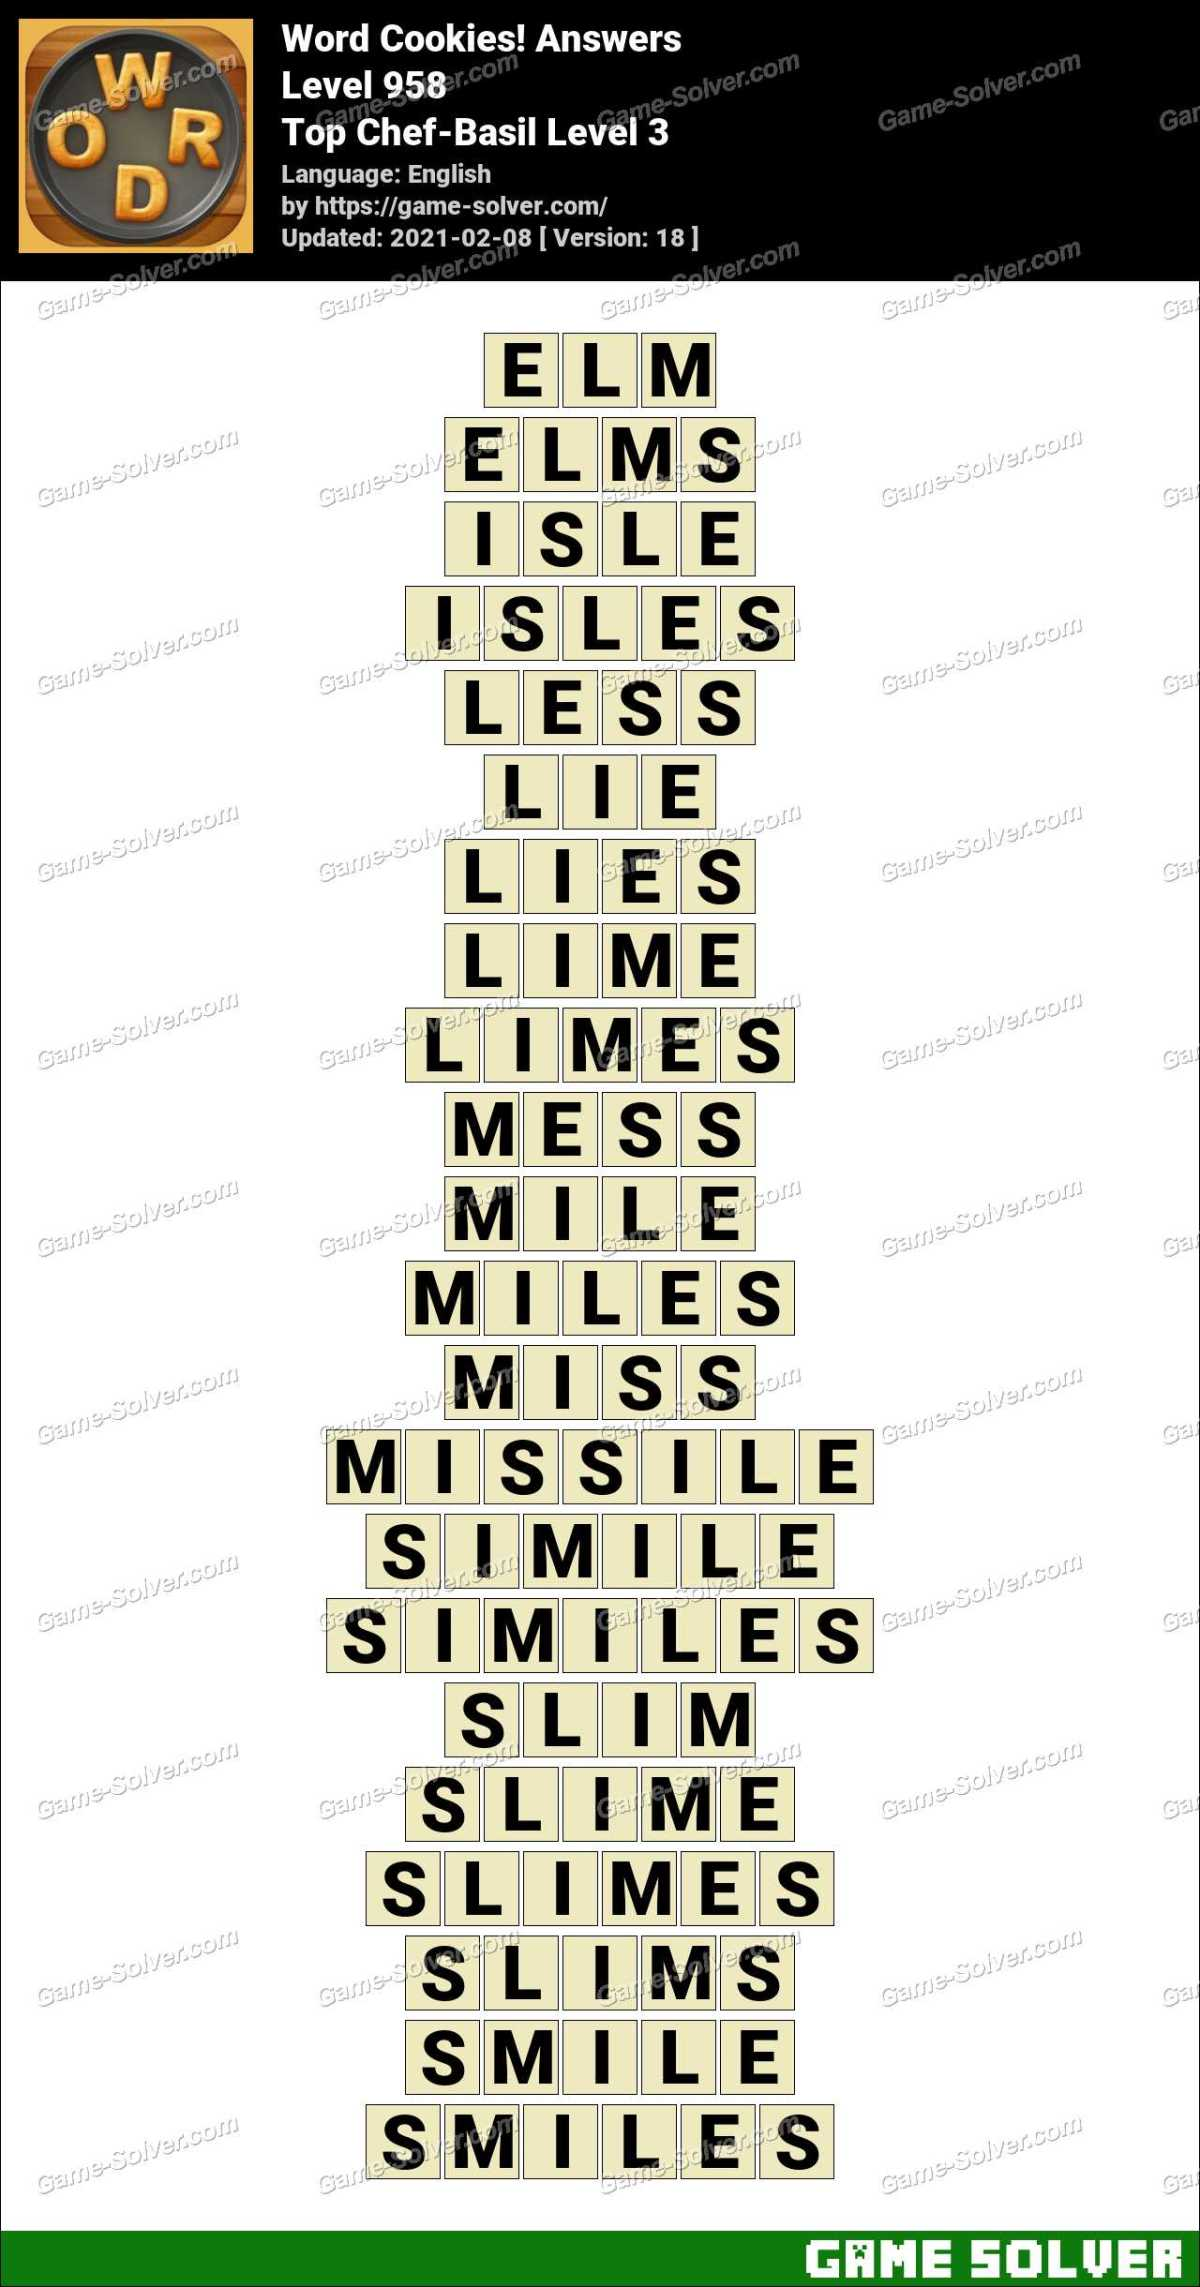 Word Cookies Top Chef-Basil Level 3 Answers